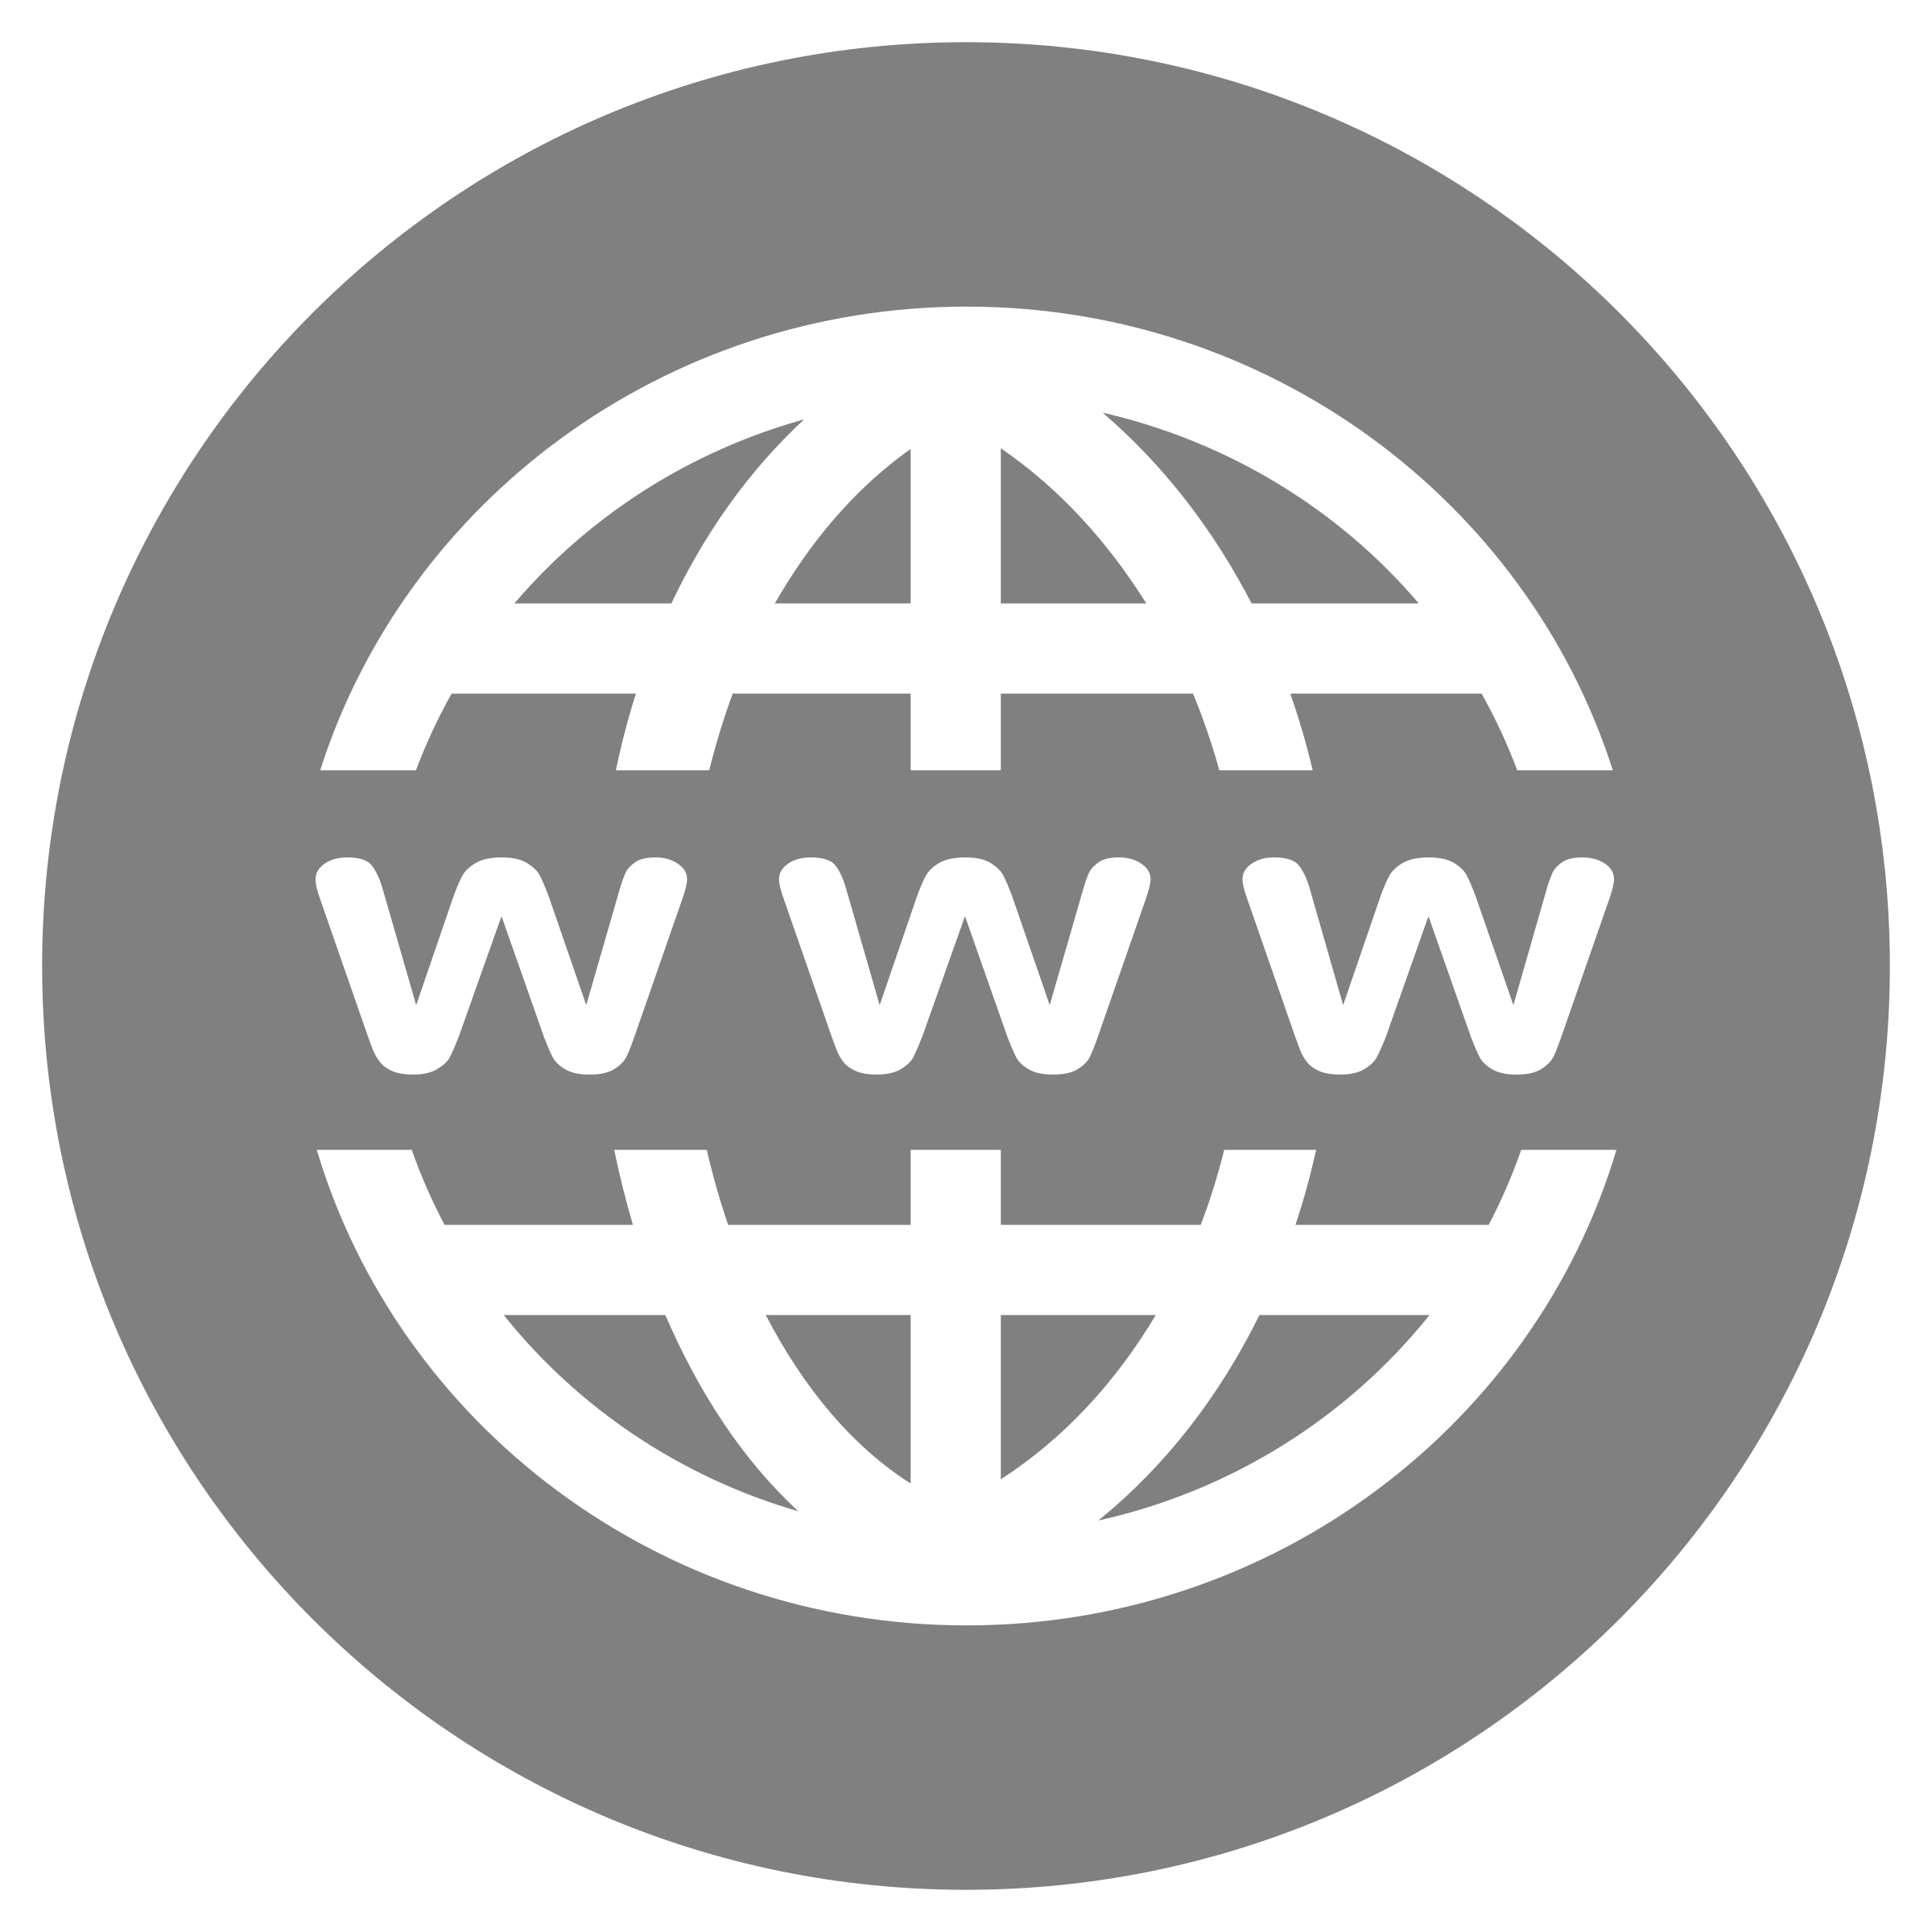 Www big letters stock. Website icon png